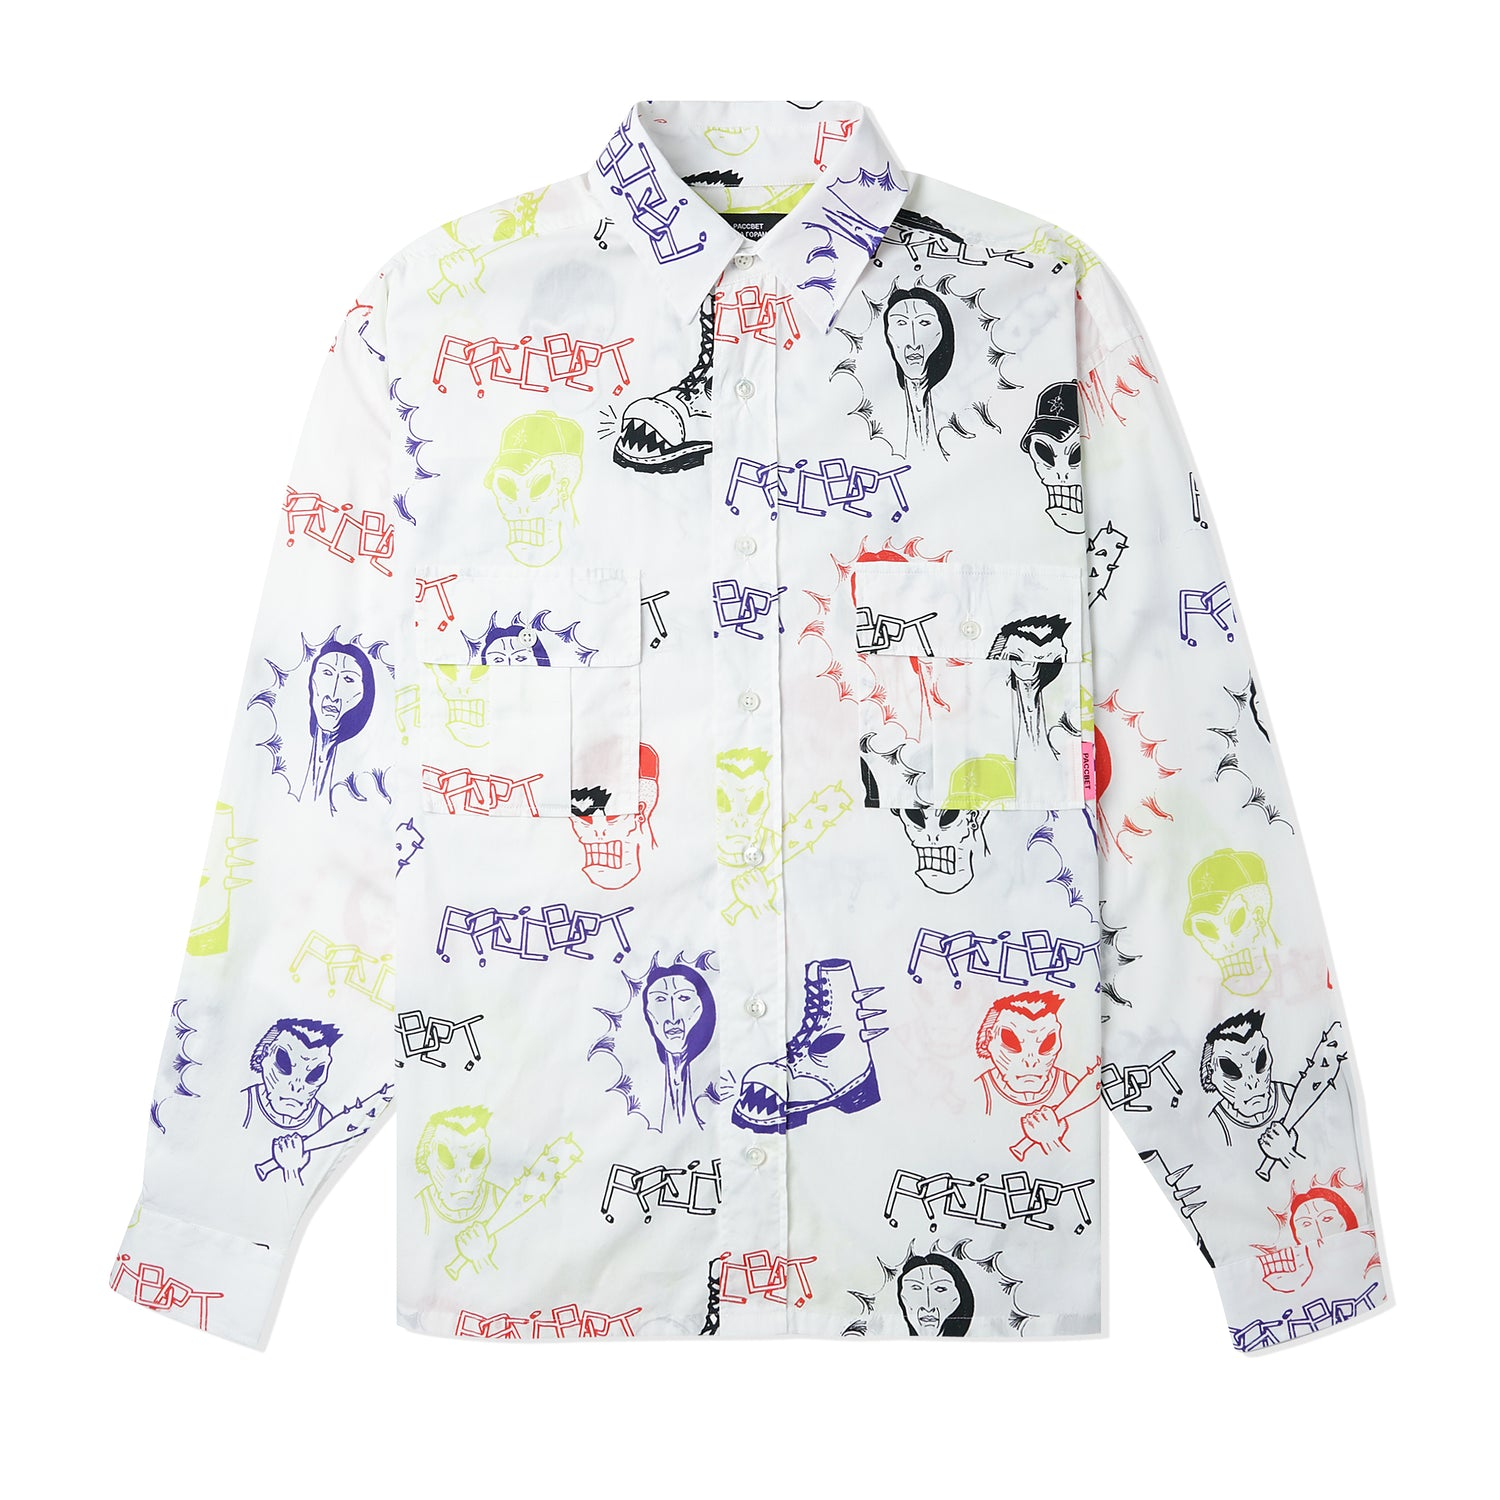 Printed L/S Shirt, Multi